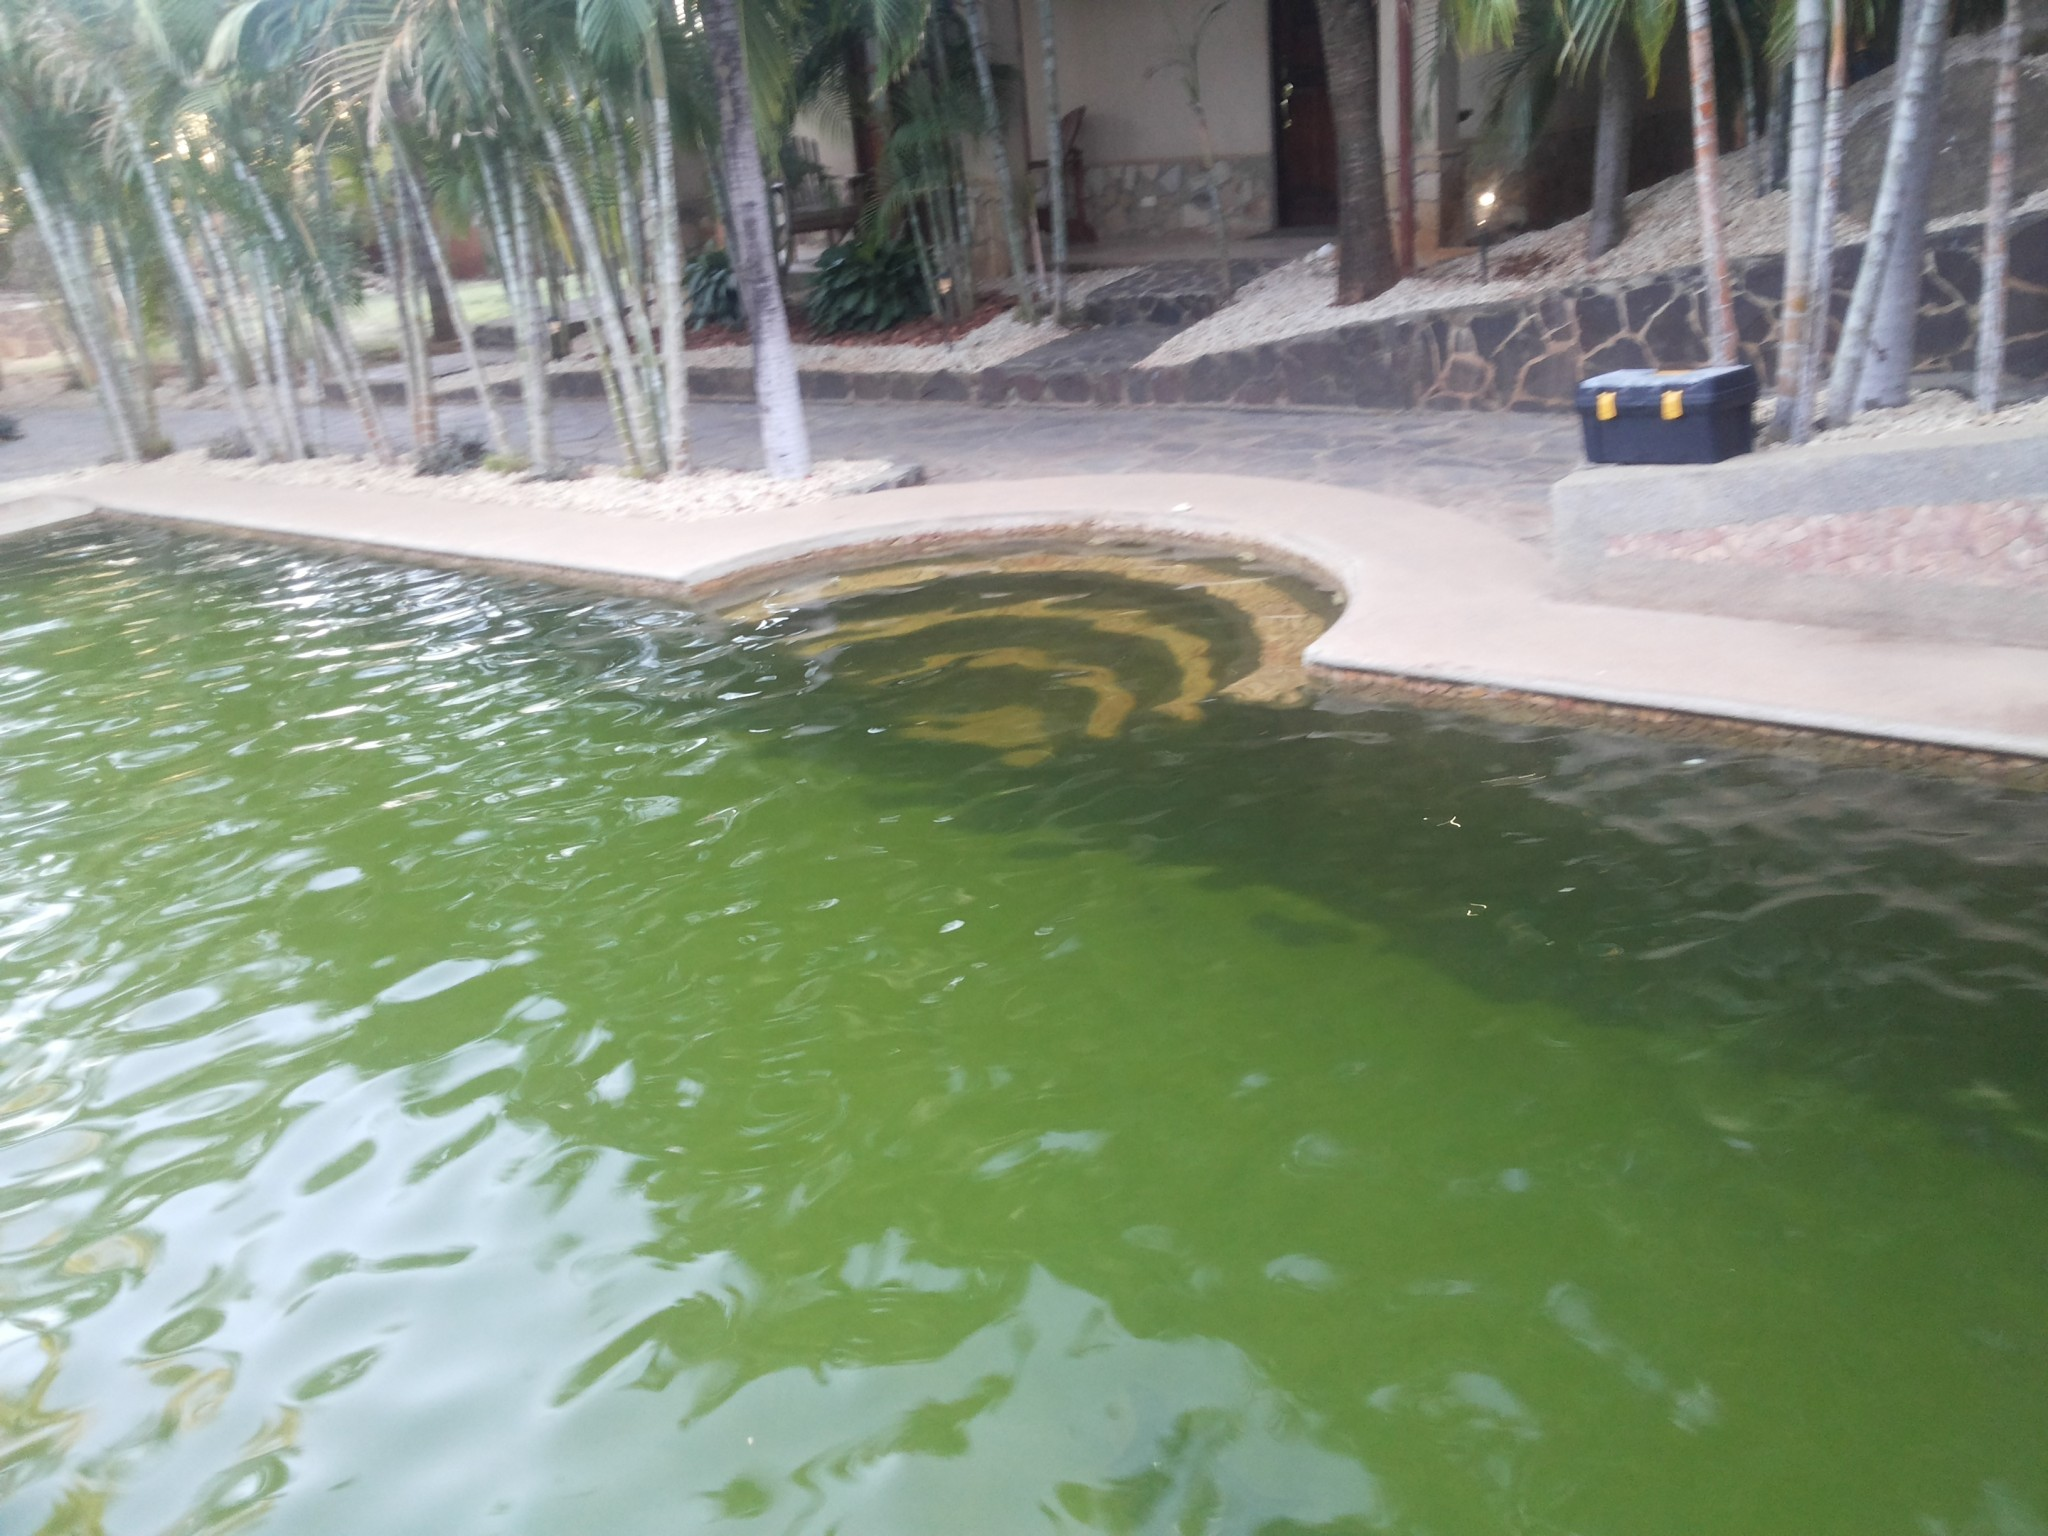 Limpiar agua verde piscina interesting piscinas with for Como aclarar agua piscina